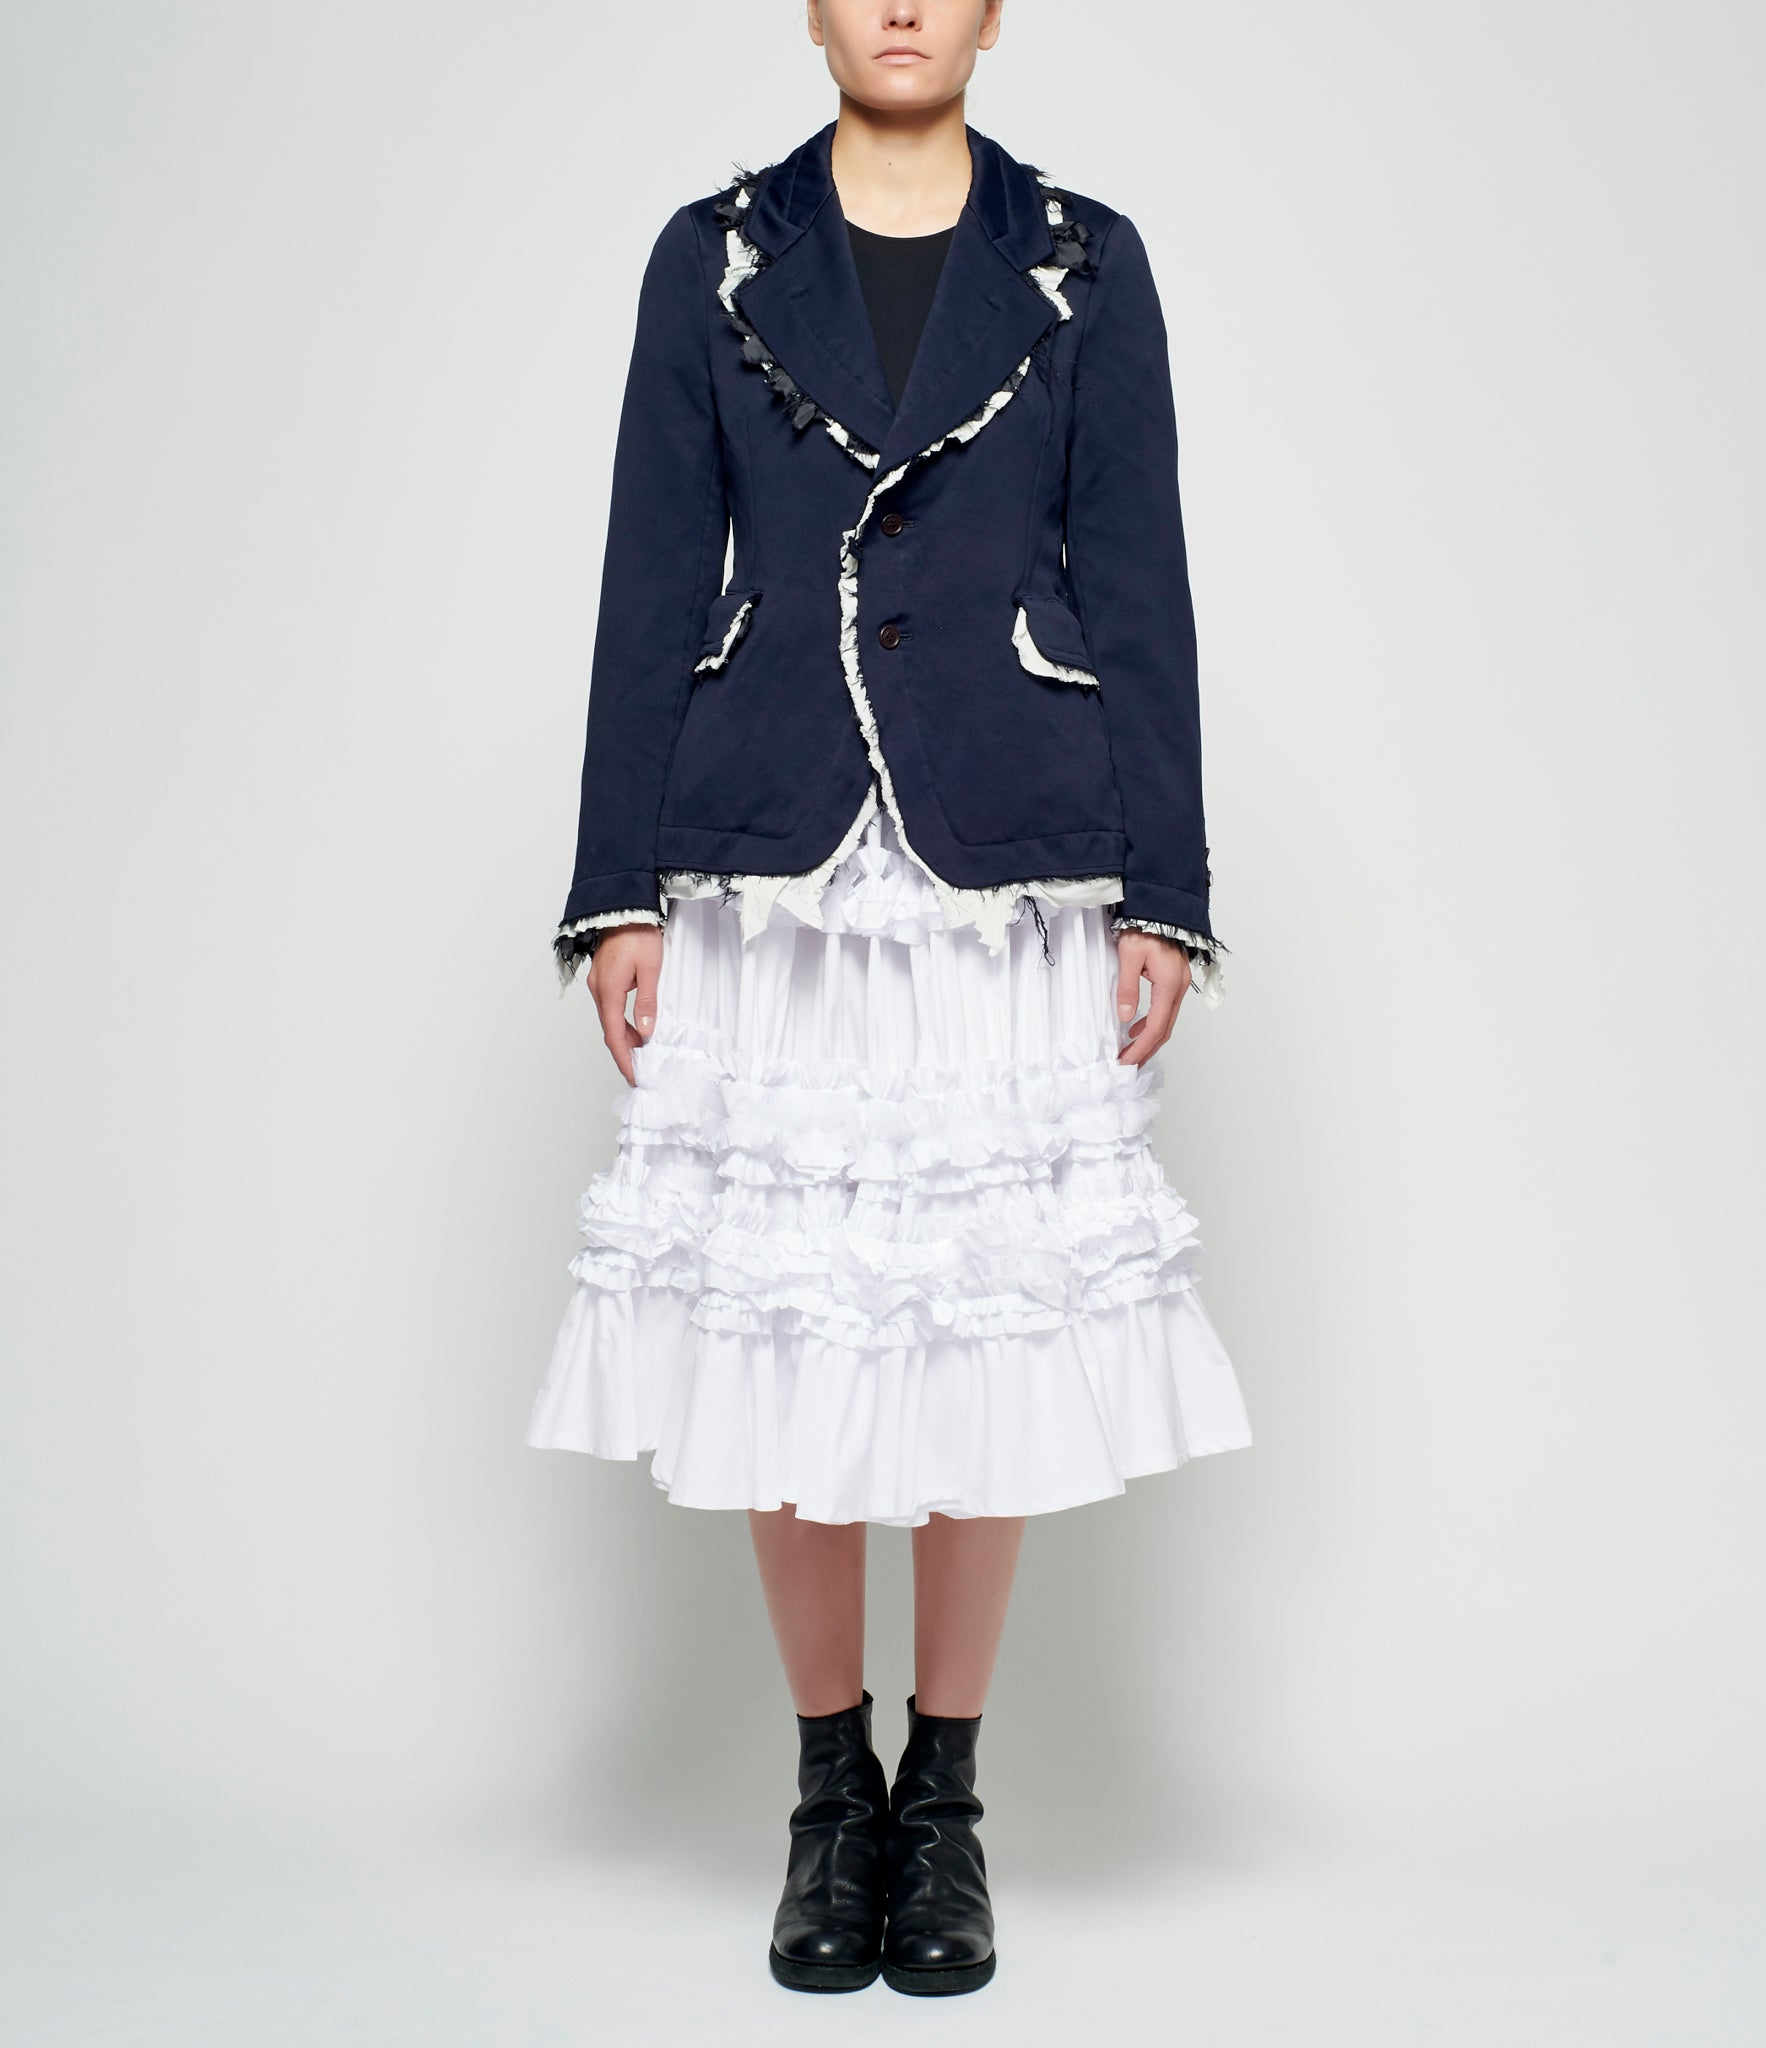 online store 62daa 42c96 Comme Des Garcons Navy Washed Polyester Jacket – IfSohoNewYork